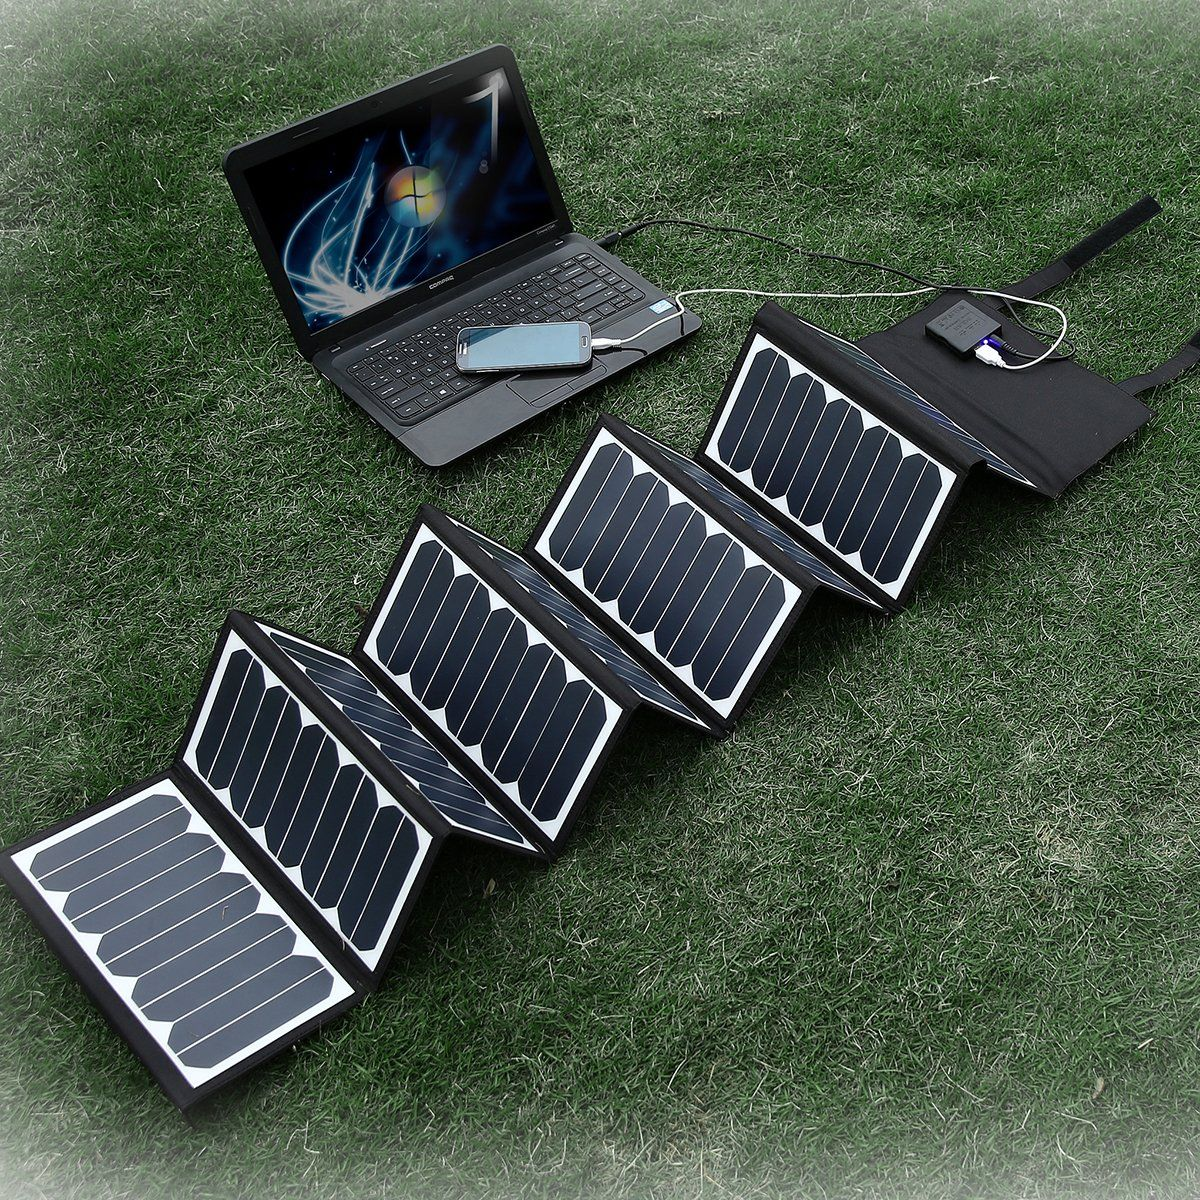 New Release Poweradd Trade High Efficient 60w Foldable Solar Panel Portable Solar Charger Usb Port 18v D In 2020 Solar Panel Charger Solar Panels Solar Power Diy